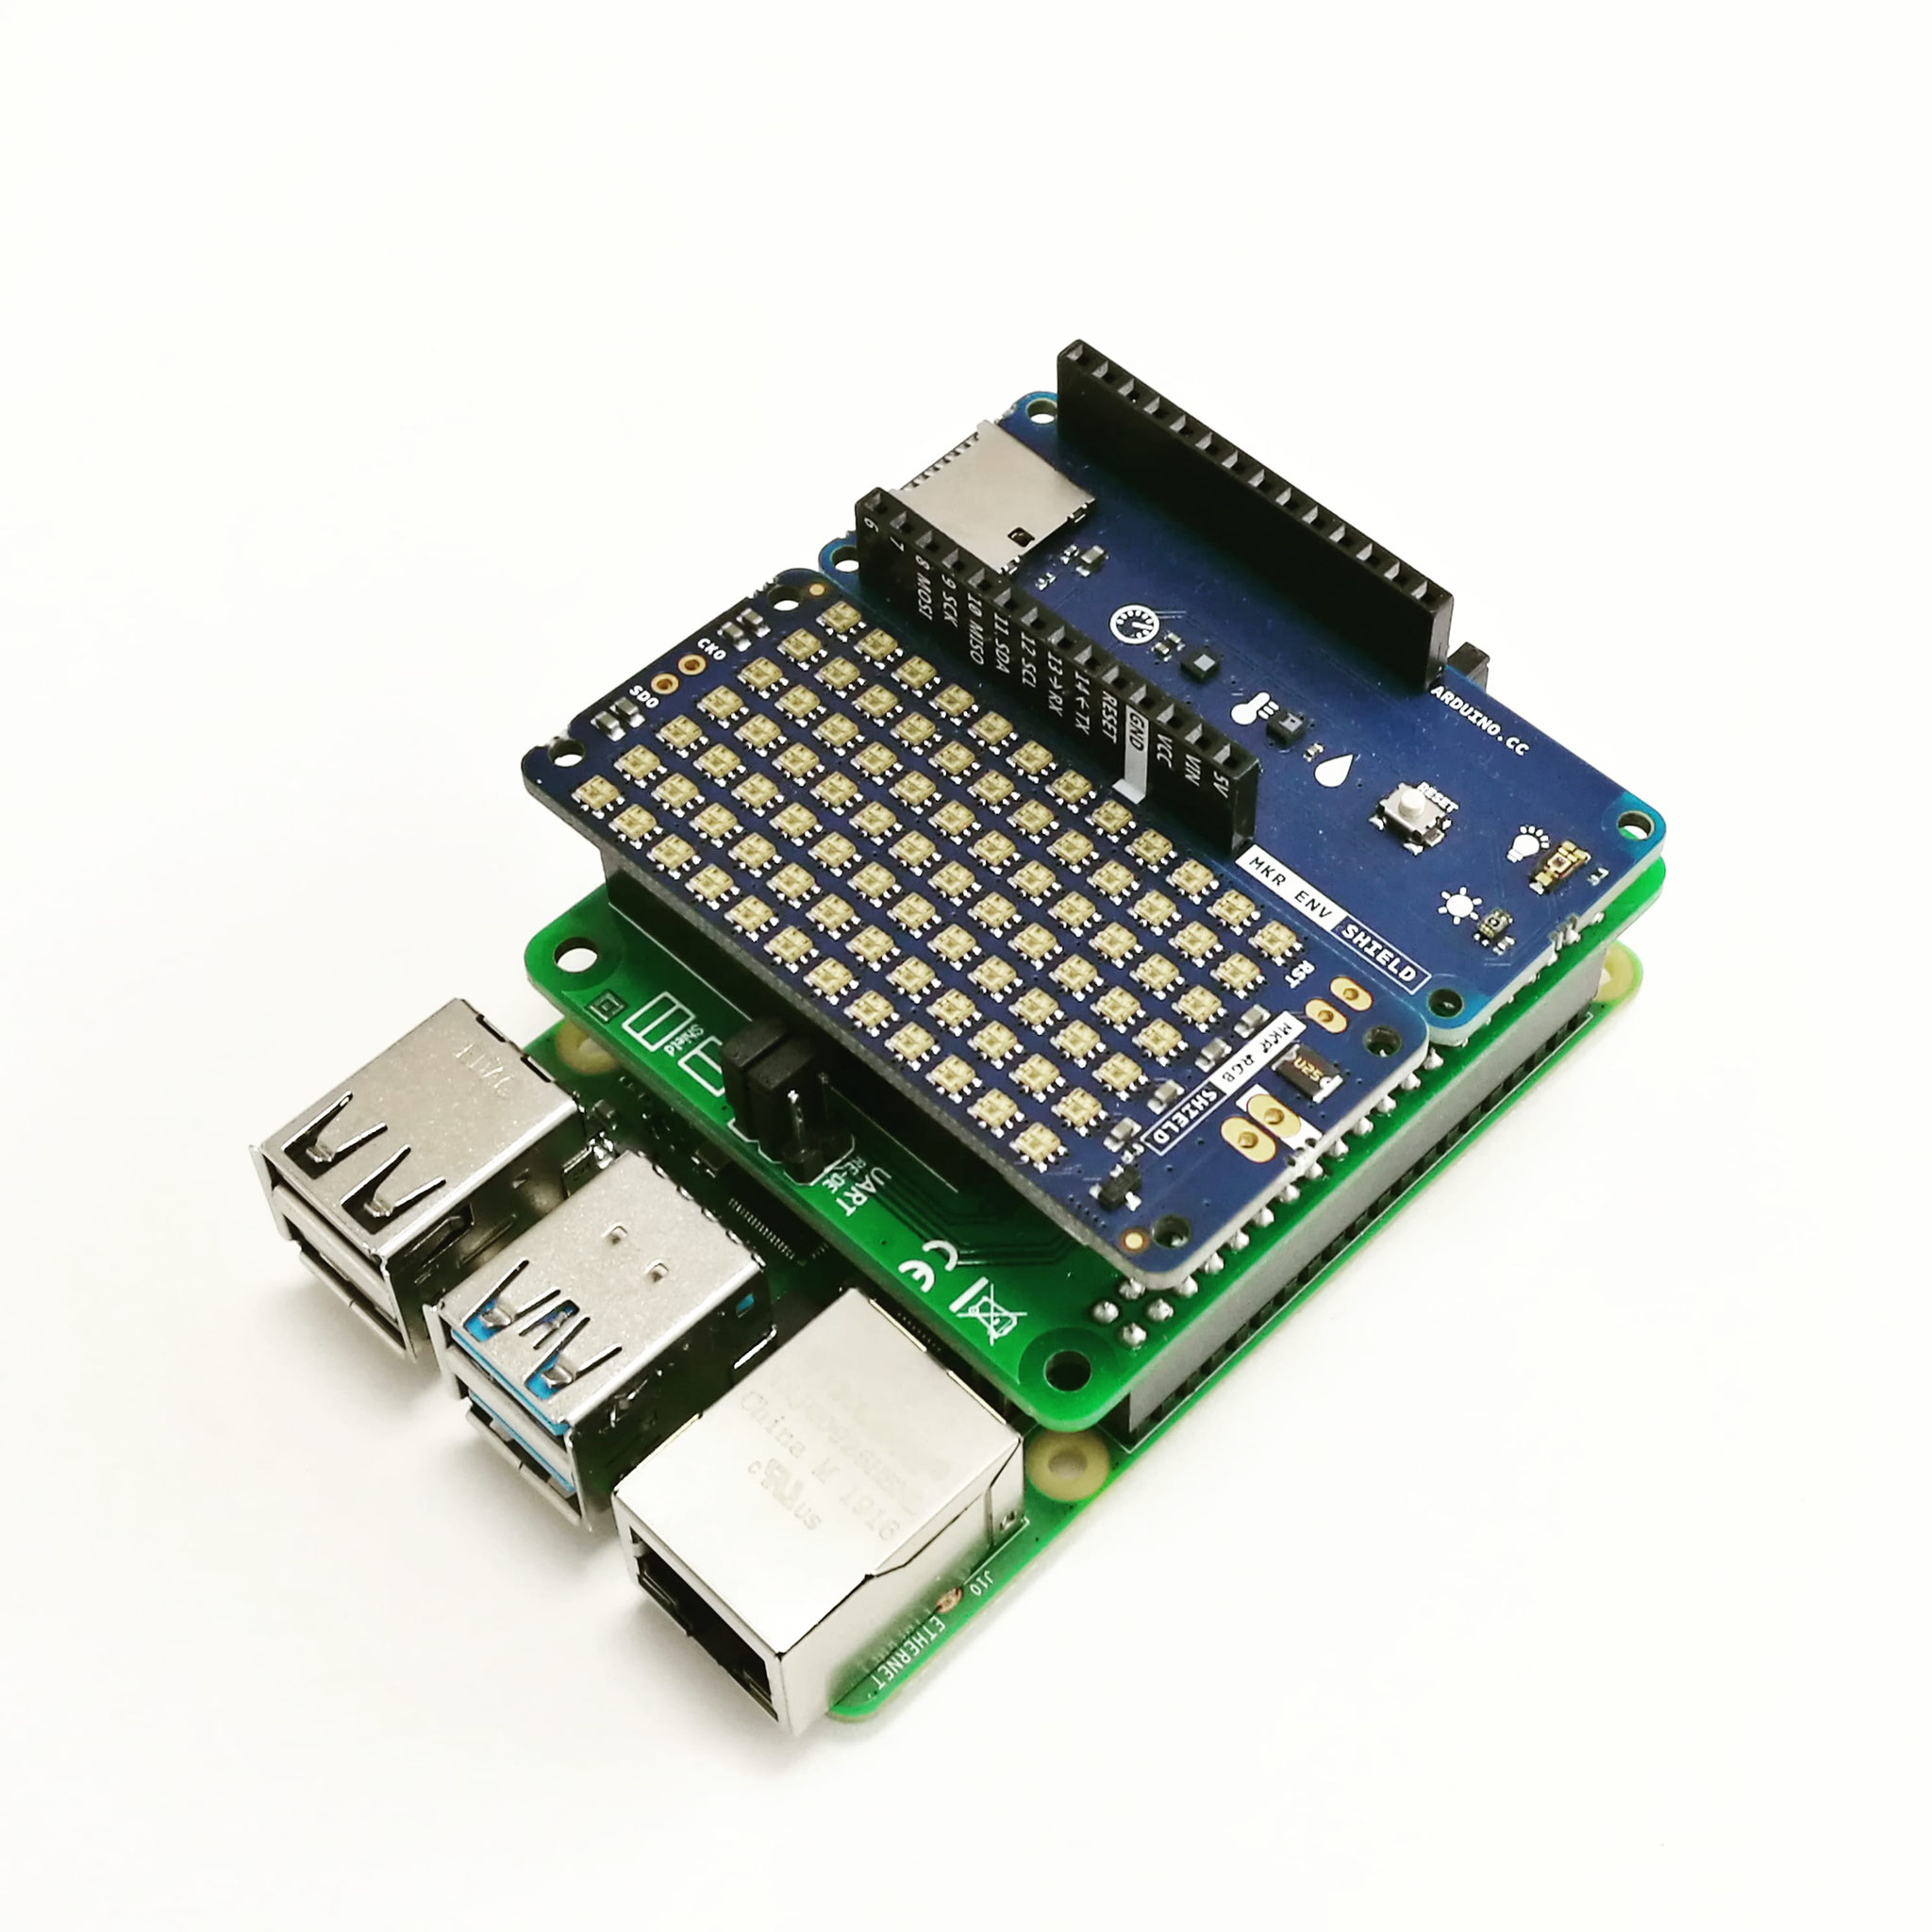 PiMKRHAT with stacked Arduino MKR ENV and RGB Shield